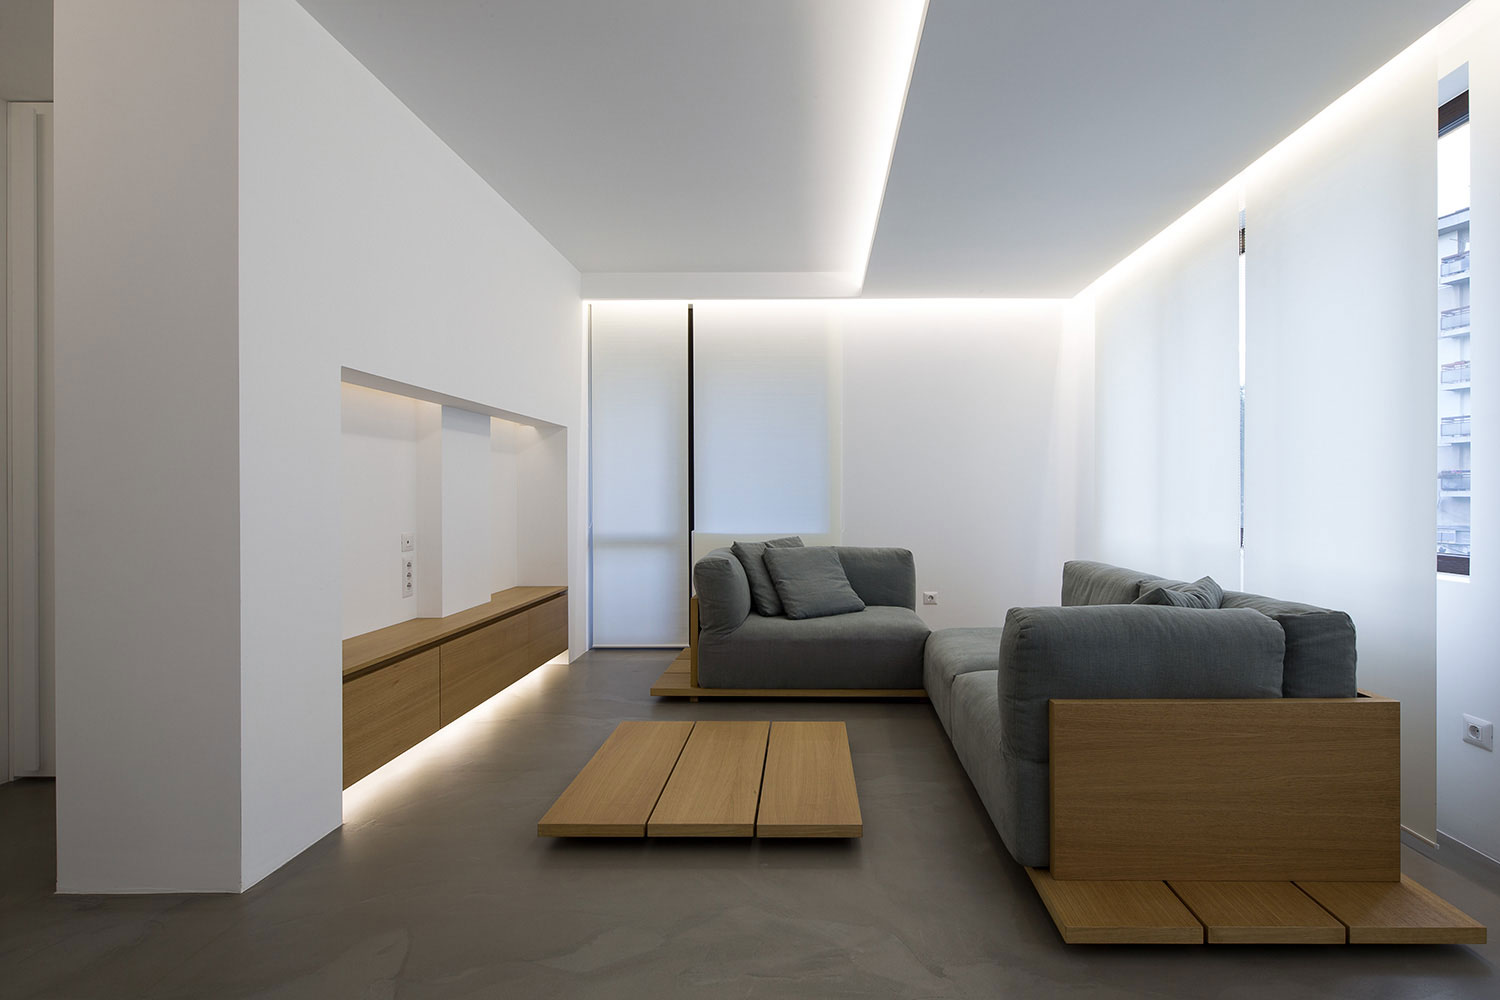 Minimalist Interior Design Minimalist Interior Design Style 7 Interesting Ideas For